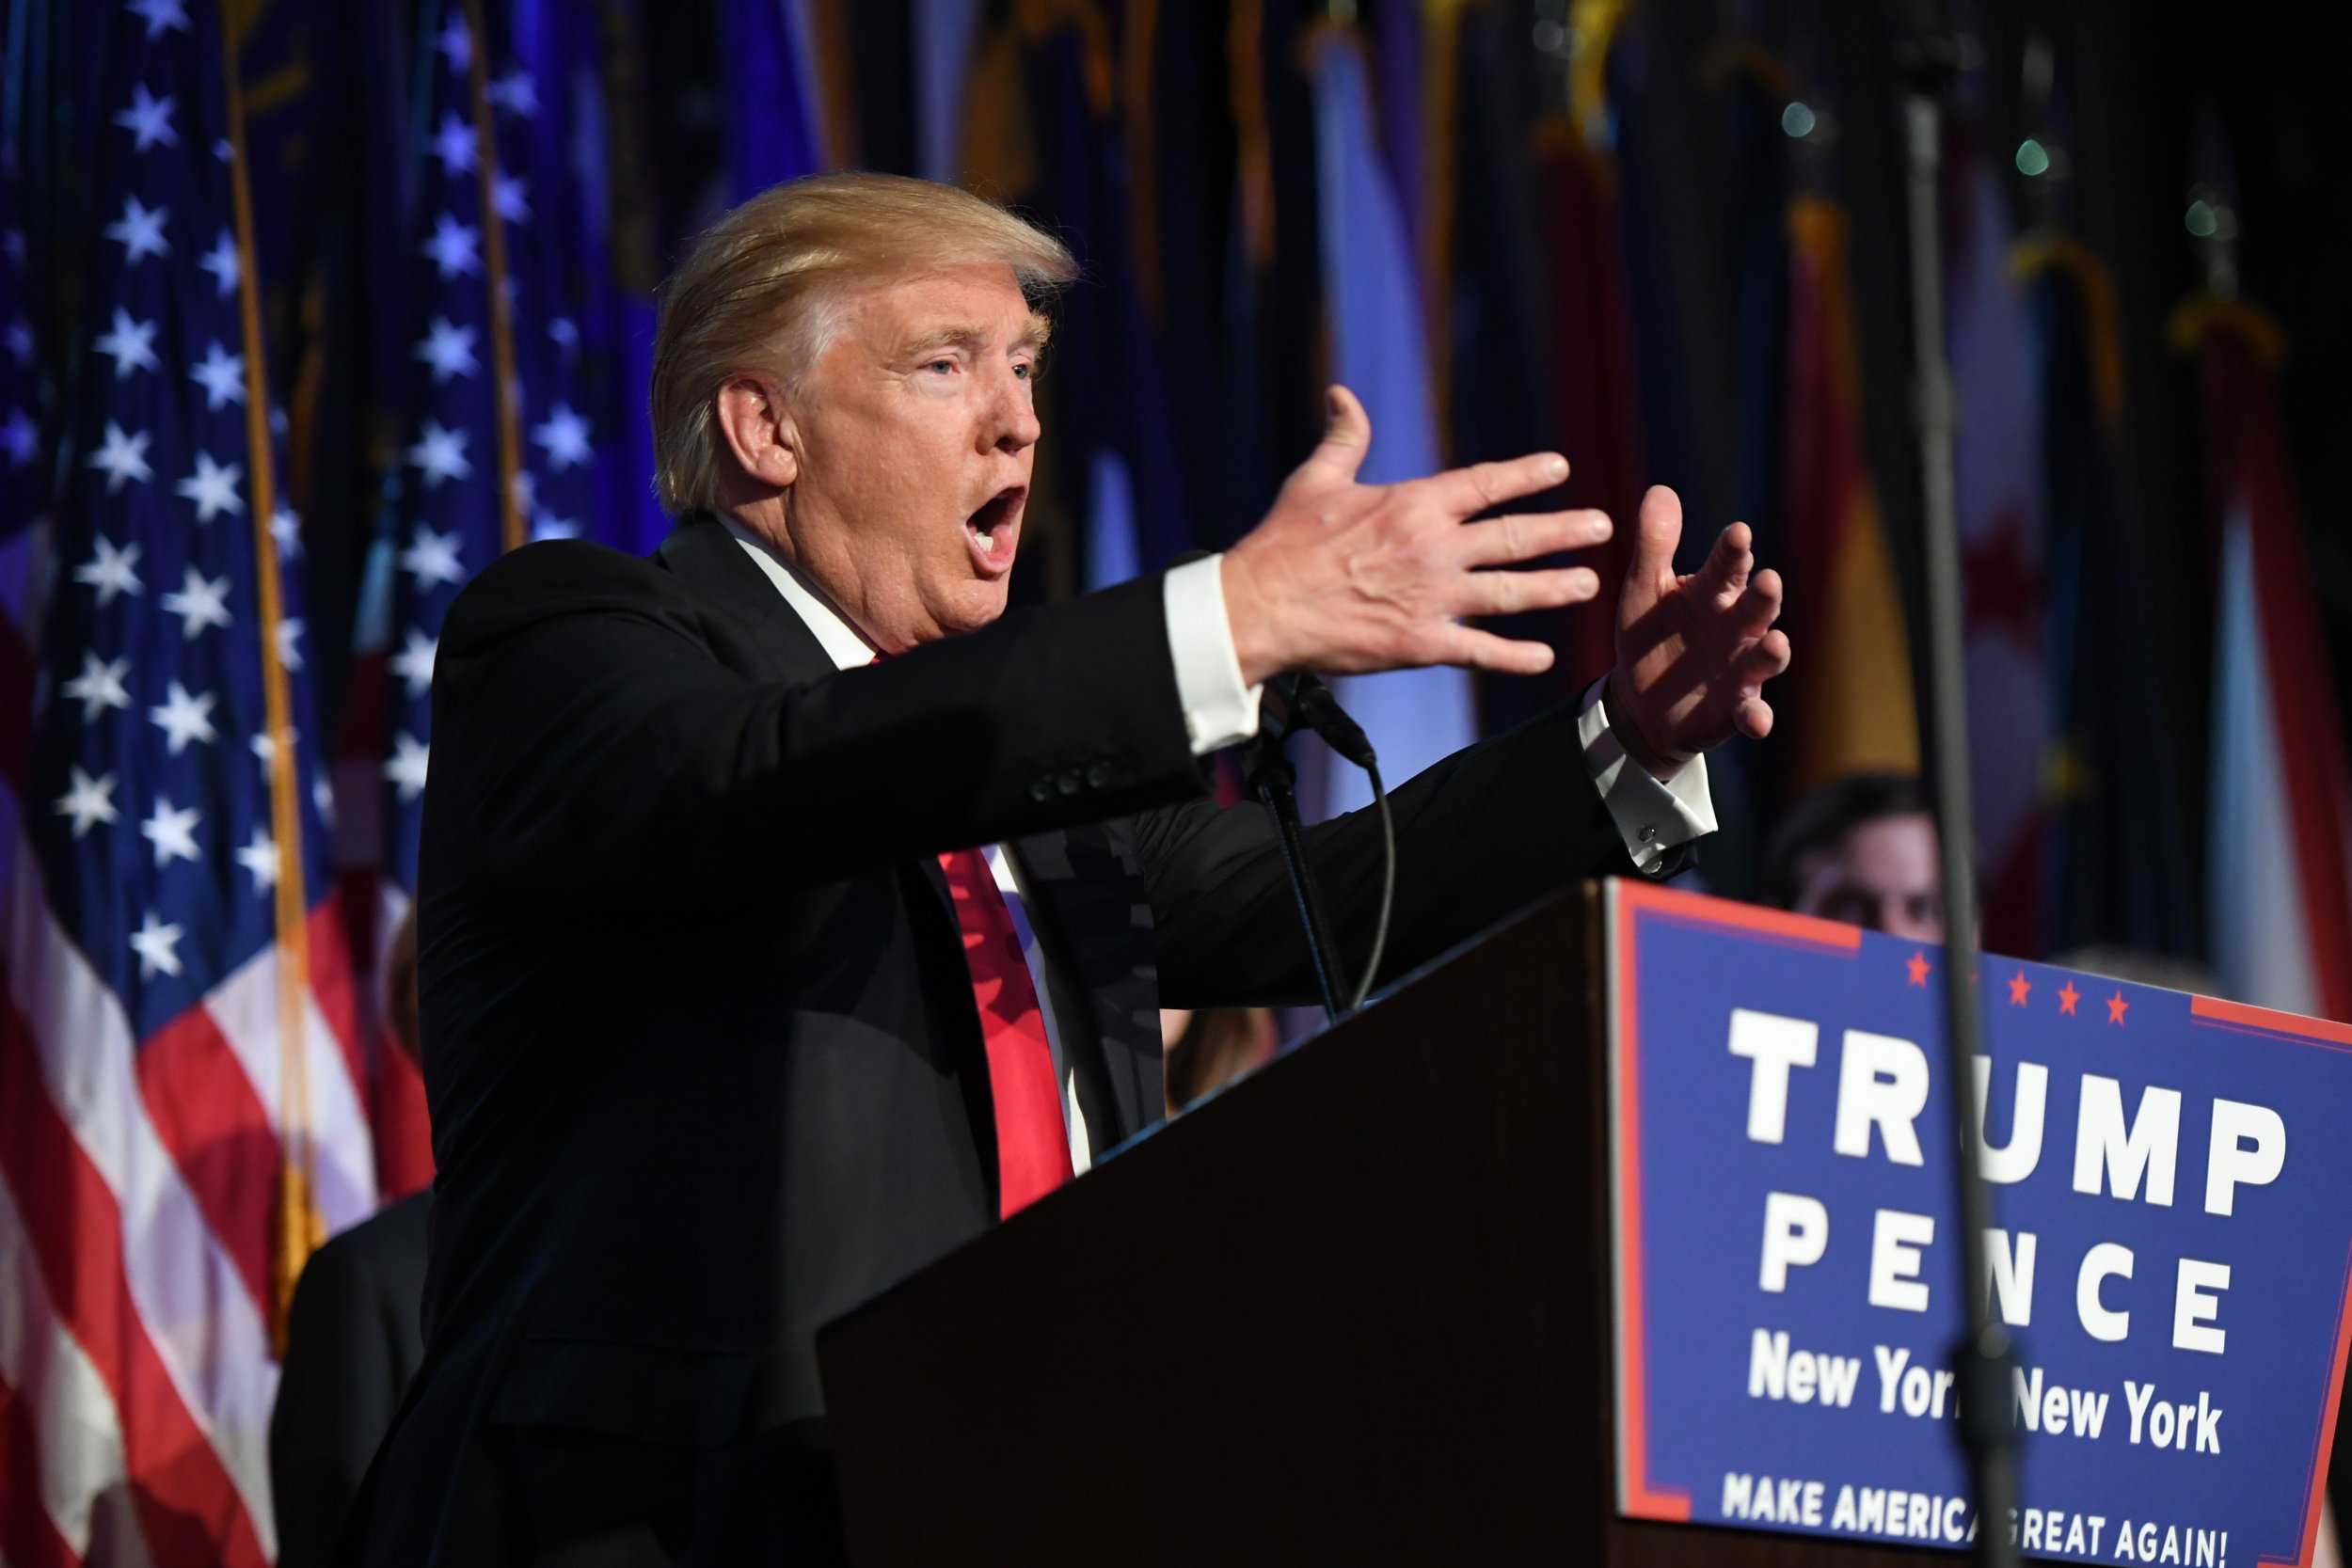 Trump statement on Muslims disppears NEW YORK, NY - NOVEMBER 9: President-elect Donald Trump addresses supporters at an election night event at the New York Hilton Midtown November 8, 2016 in New York City, New York.(Photo by Jabin Botsford /The Washington Post via Getty Images) (Photo by Jabin Botsford /The Washington Post via Getty Images)